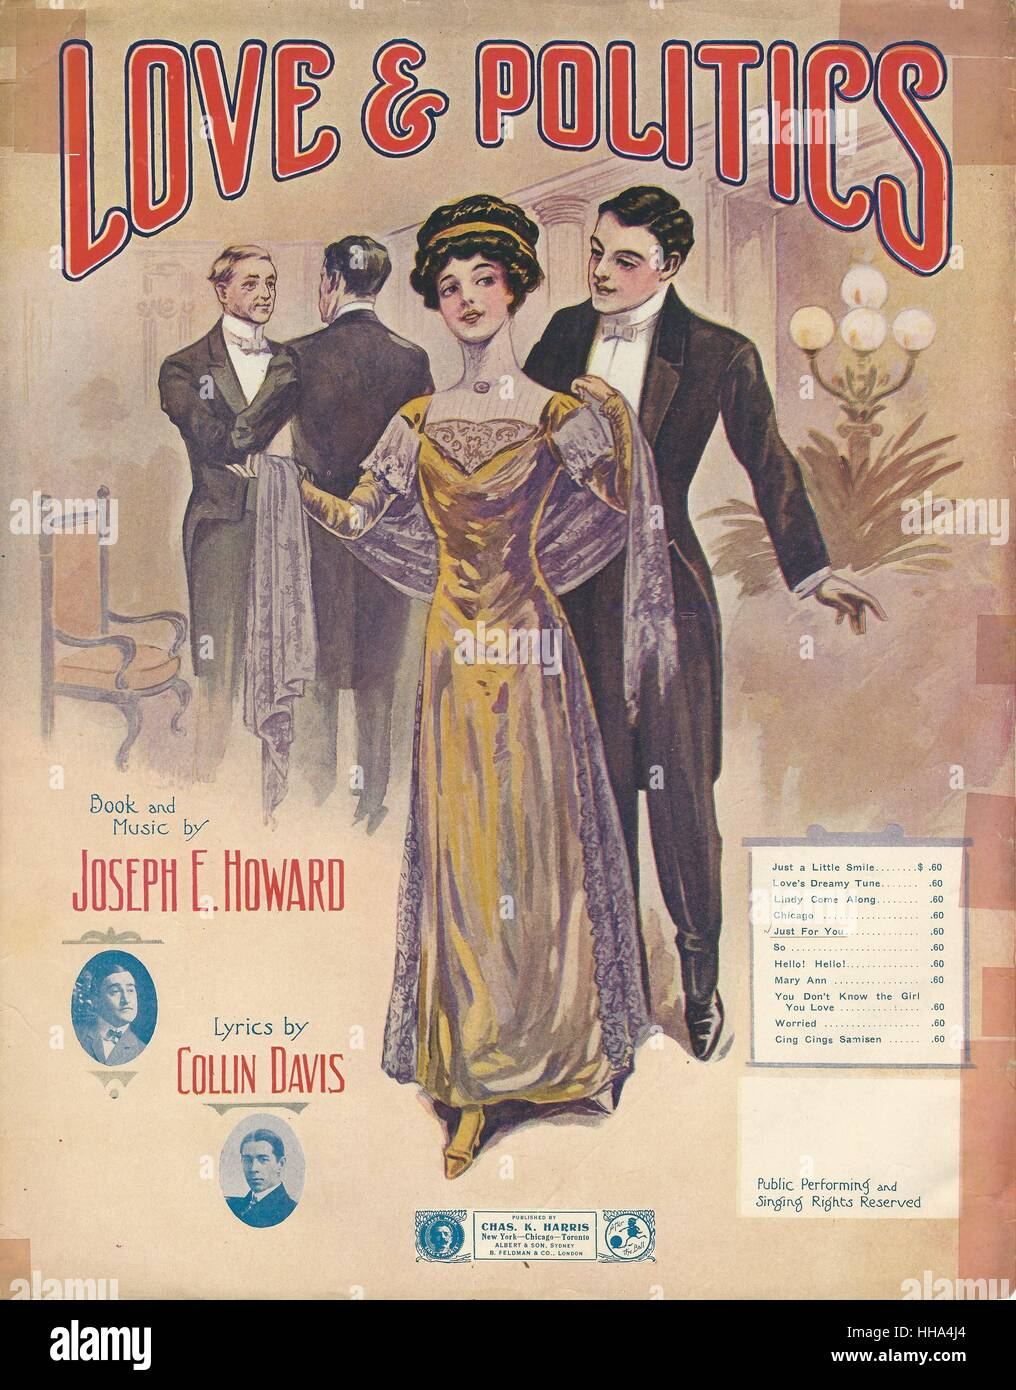 'Love and Politics' 1911 Chicago Musical Sheet Music Cover - Stock Image